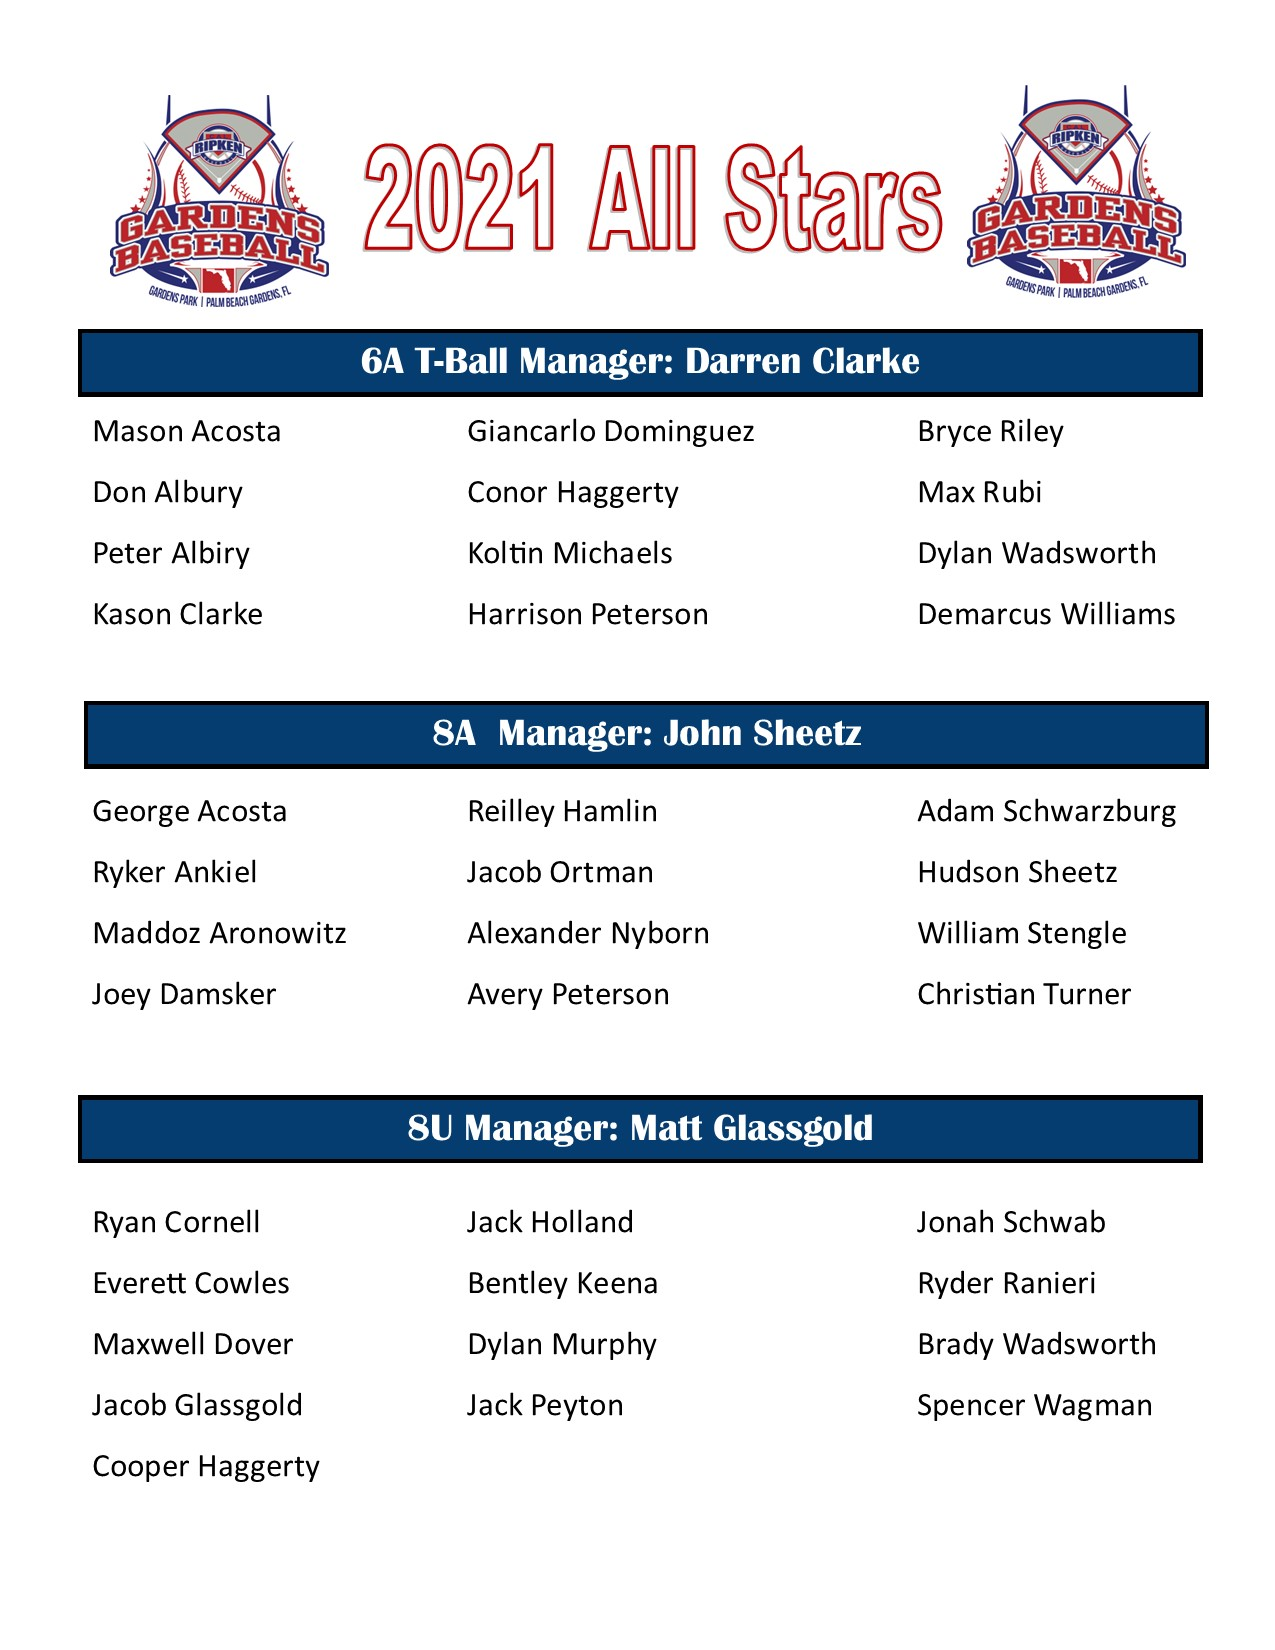 2019 All Star Rosters